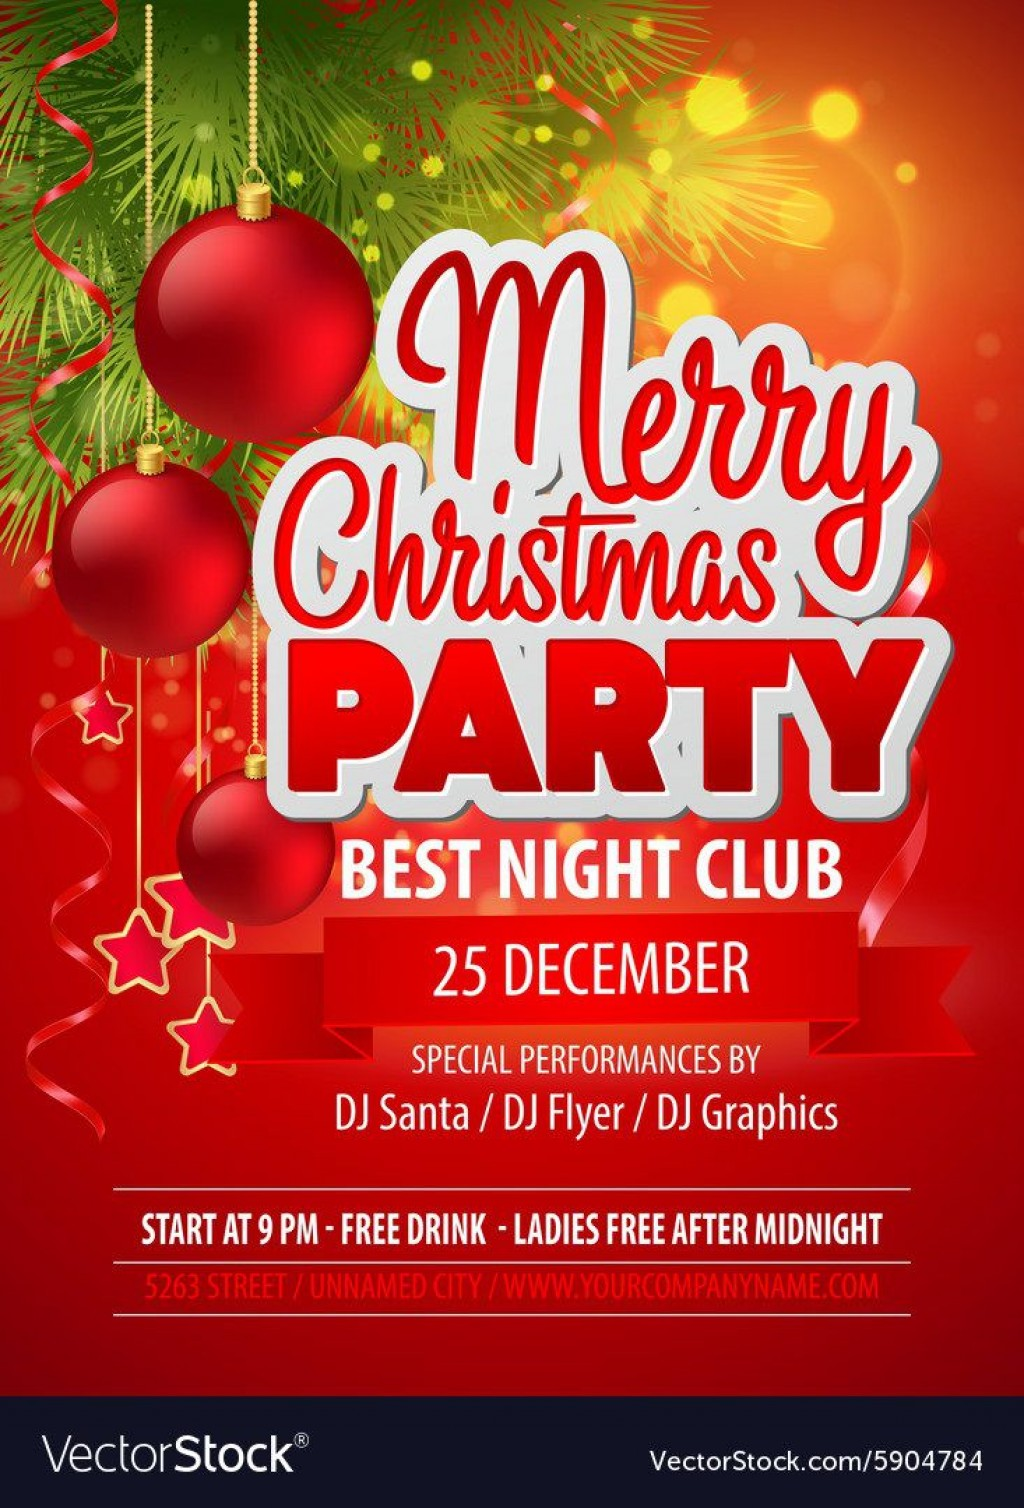 004 Outstanding Christma Party Flyer Template Free High Resolution  Company Invitation Printable WordLarge